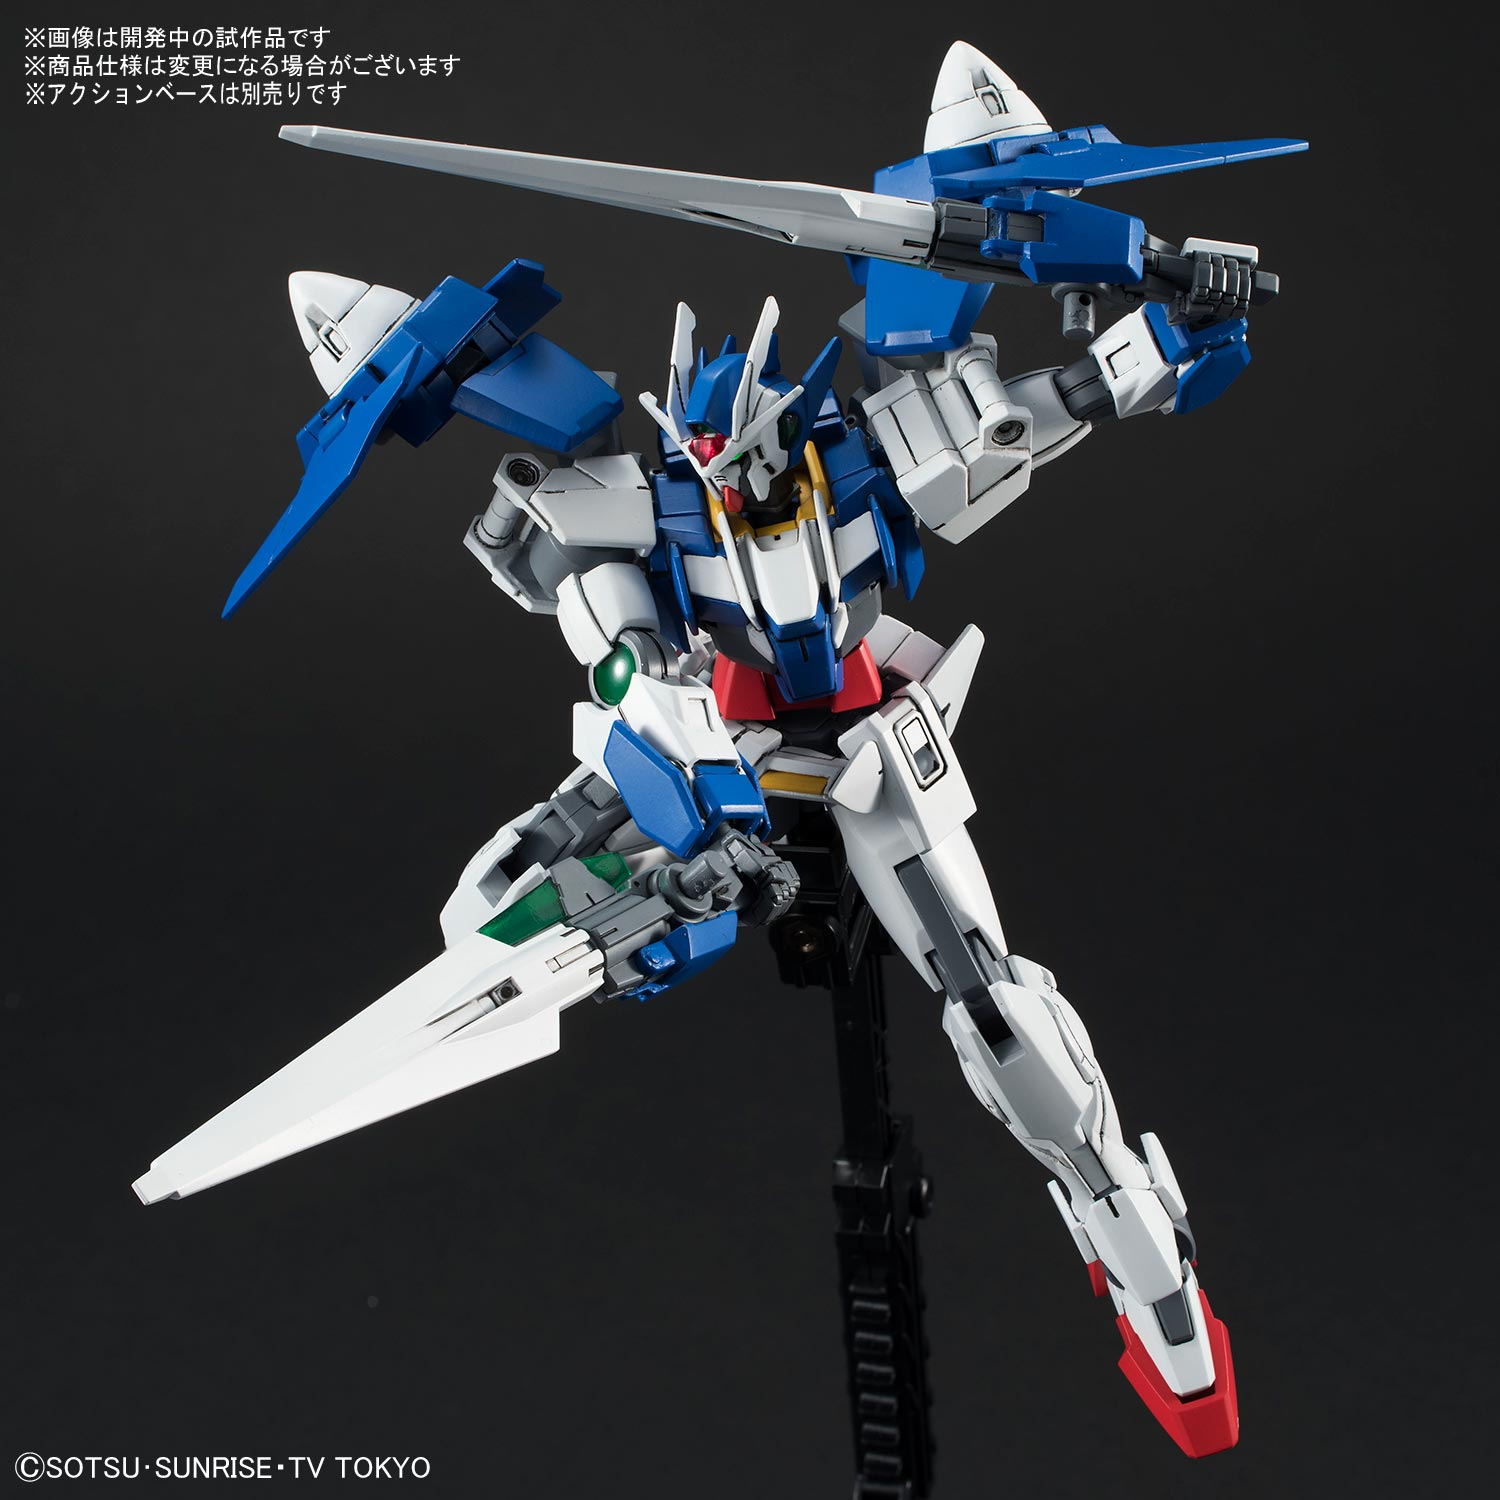 HGBD 1/144 Gundam 00 Diver - Release Info, Box art and Official Images